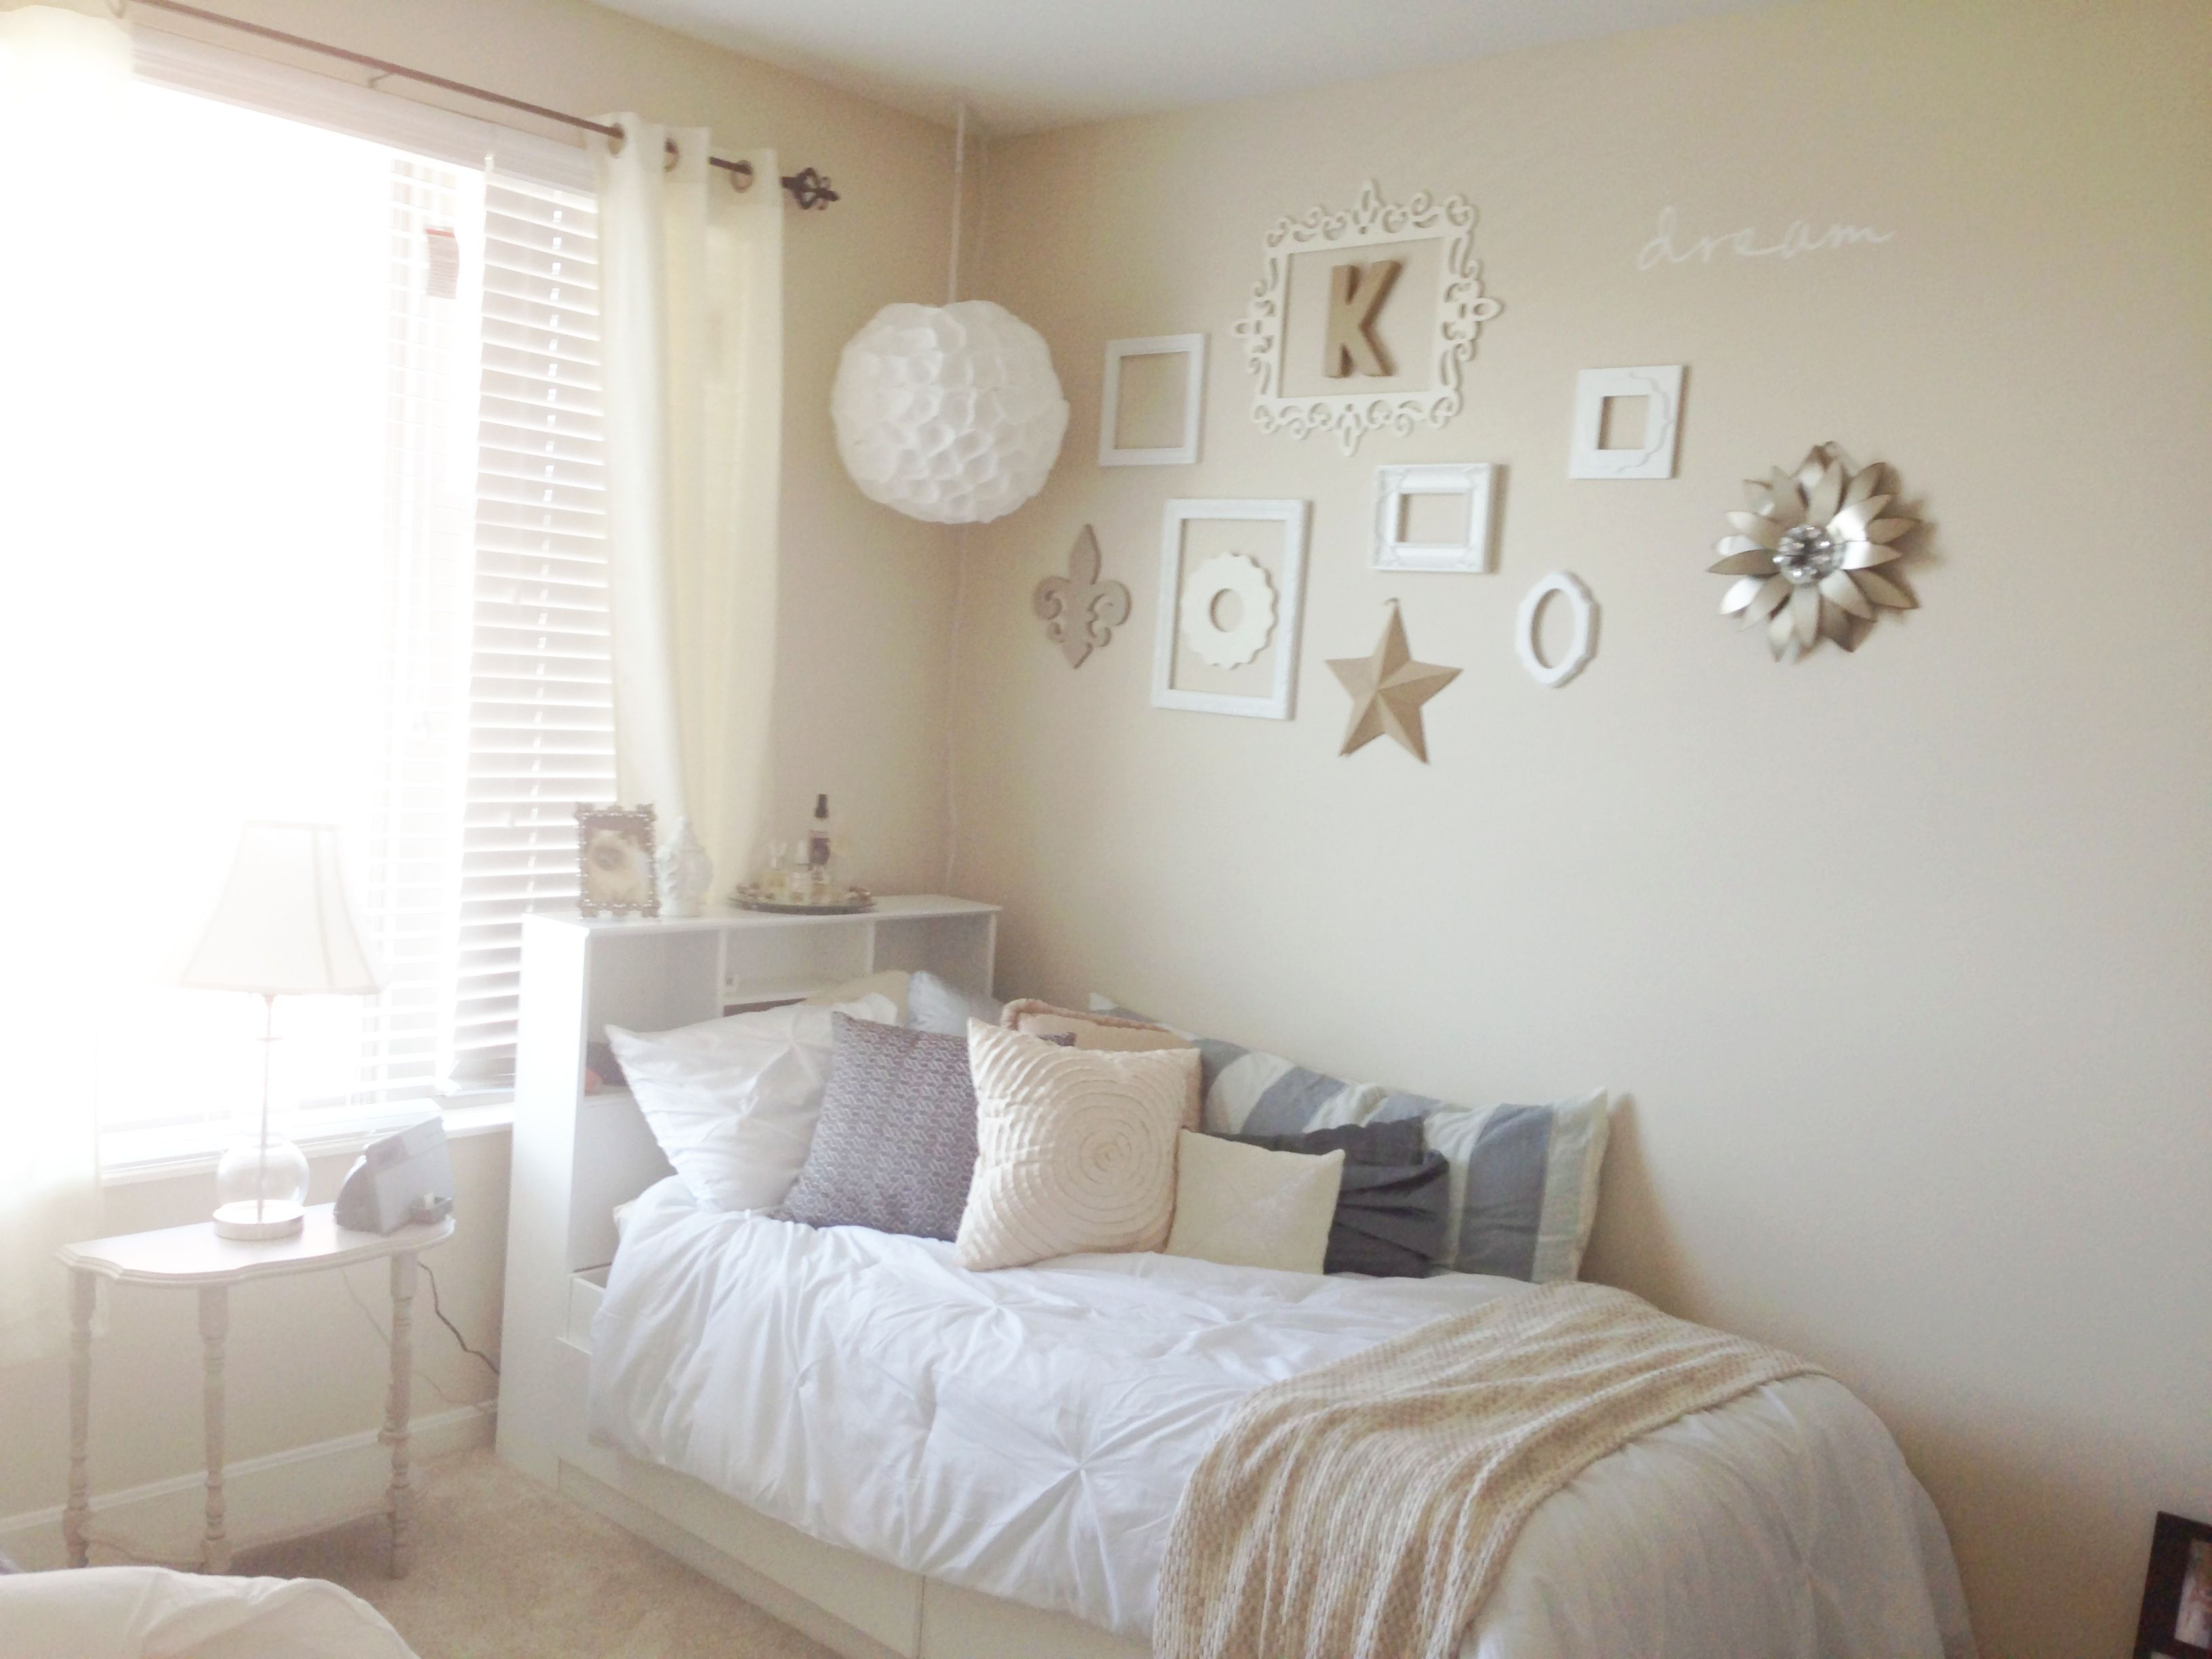 Chic college apartment bedroom even though